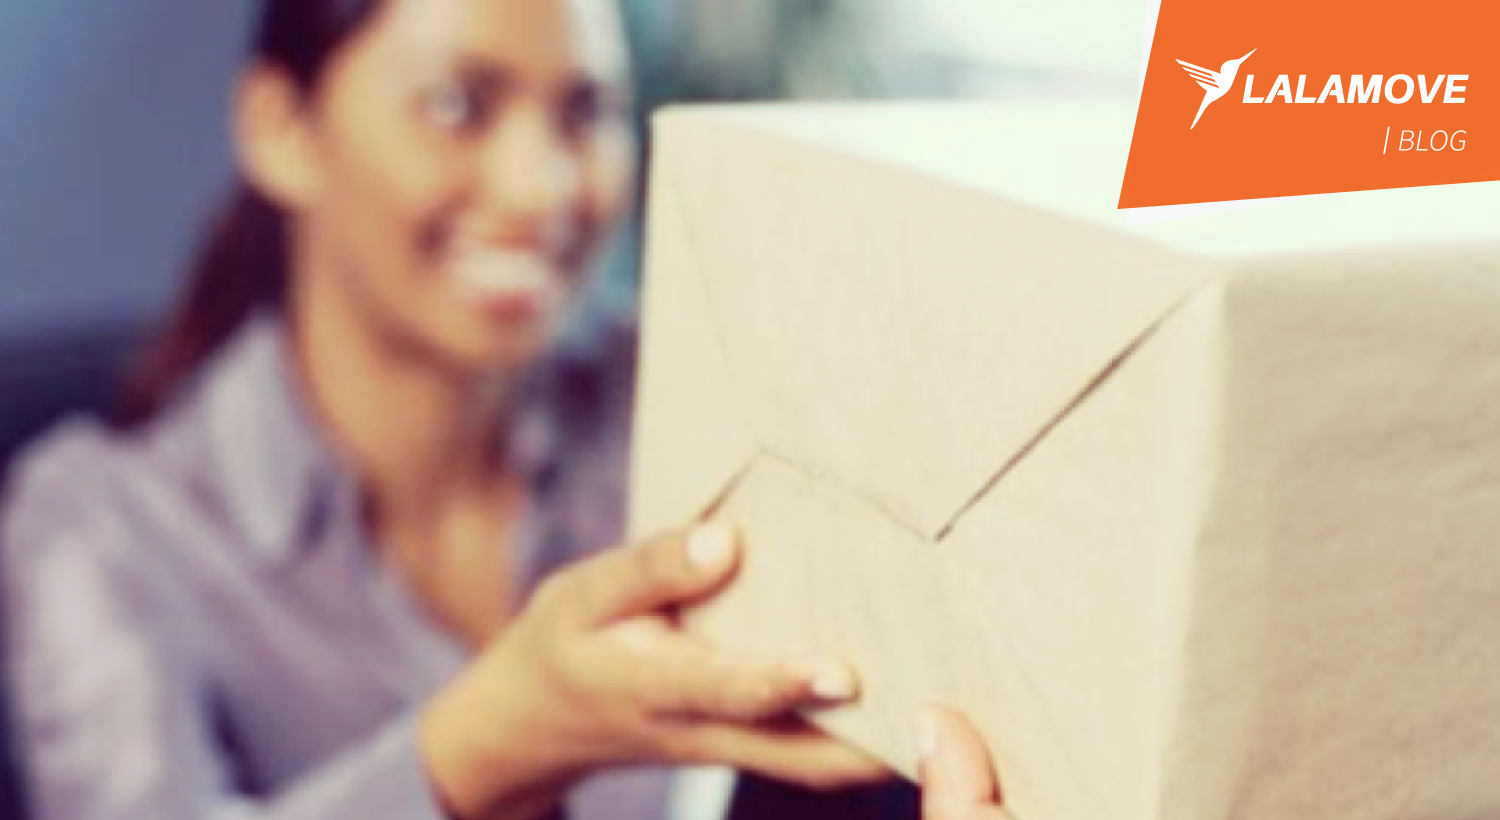 Same day delivery is the future to the success of online shopping